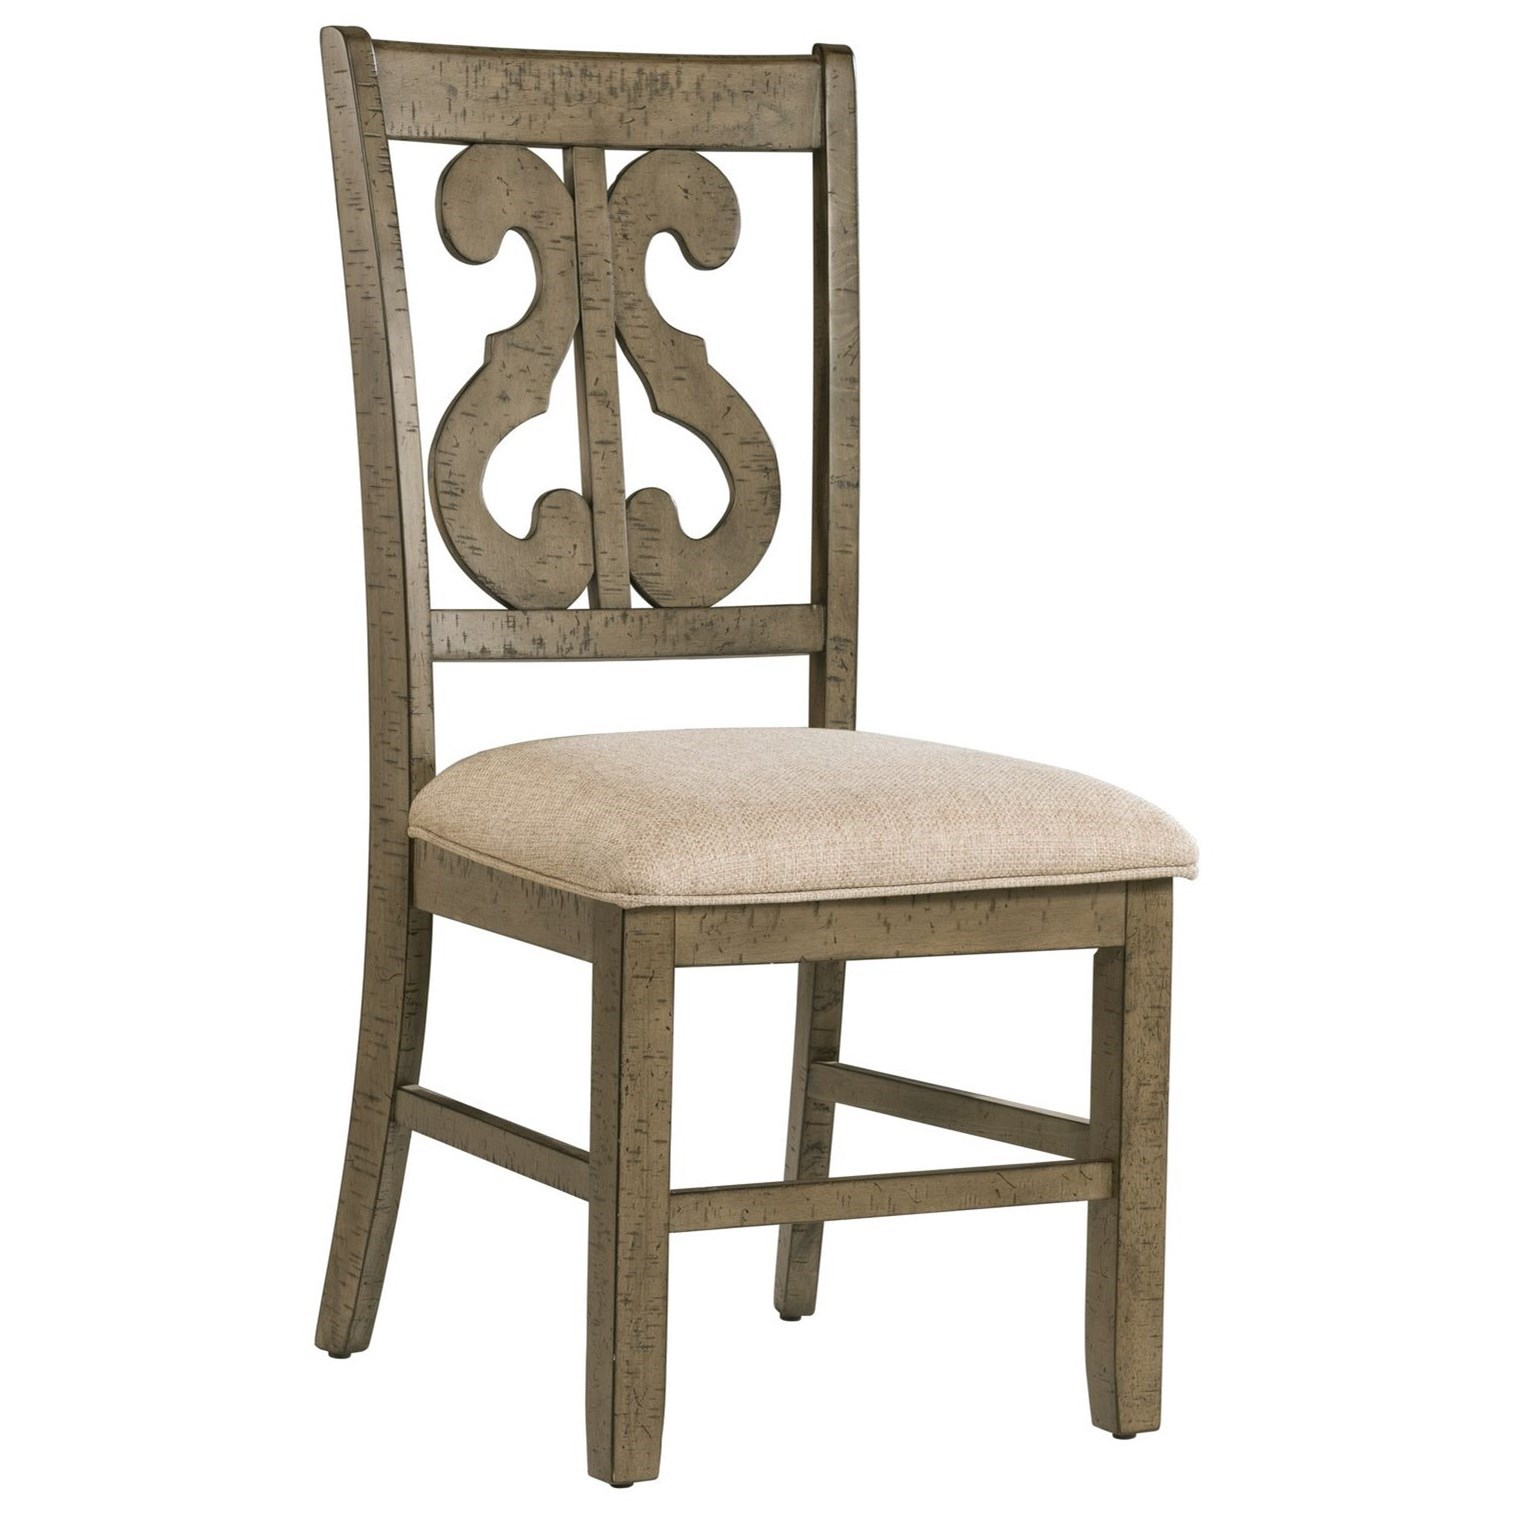 Stone Dining Side Chair by Elements International at Bullard Furniture